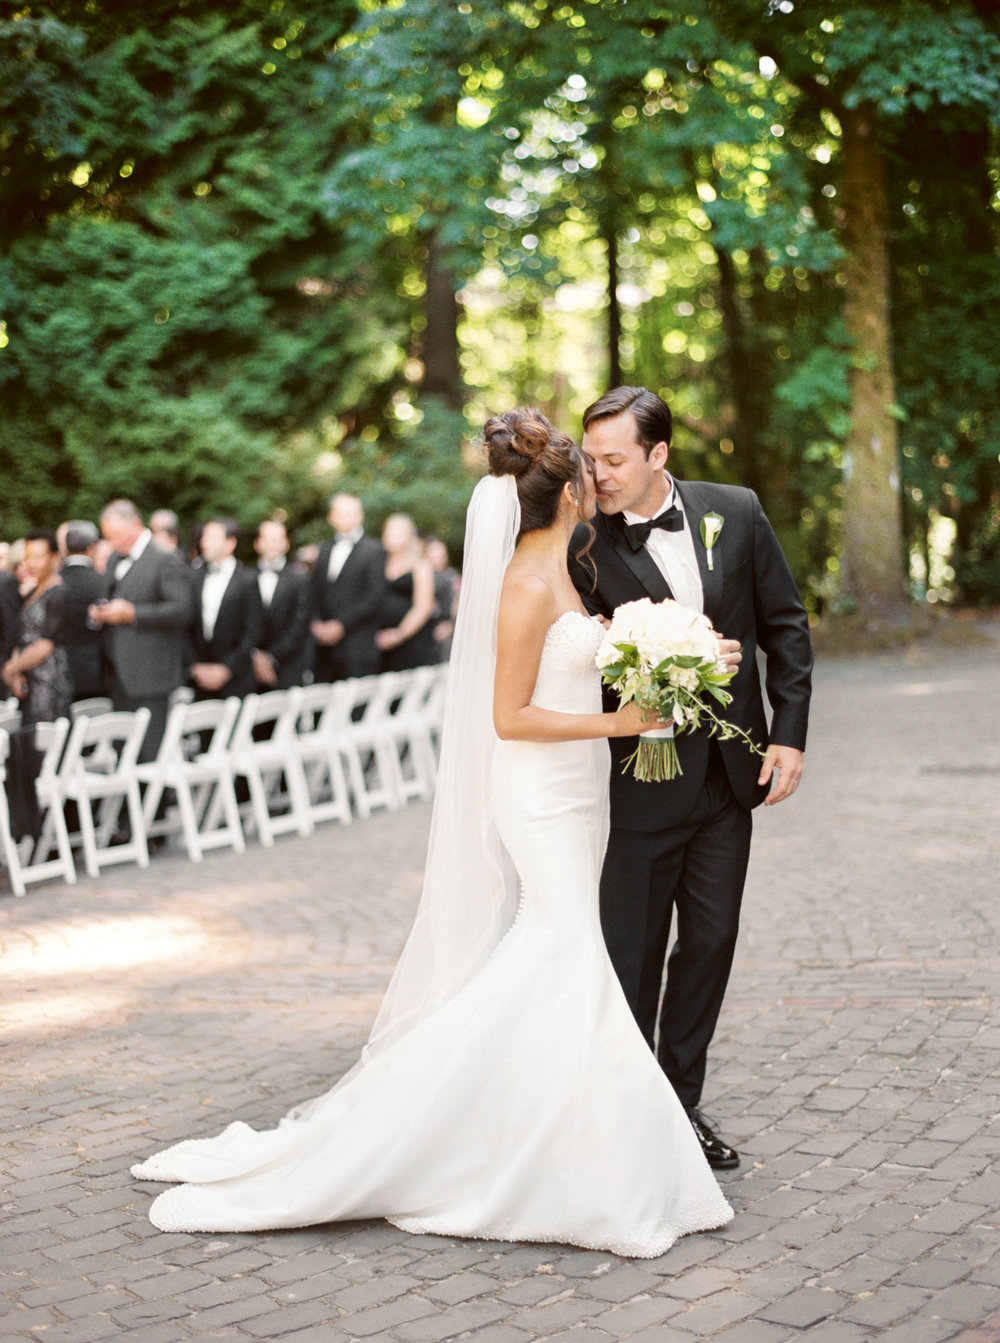 146OutliveCreative_Travel_Photographer_Videographer_Lewis&Clark_Oregon_Elegant_BlackTie_Destination_Wedding.jpg